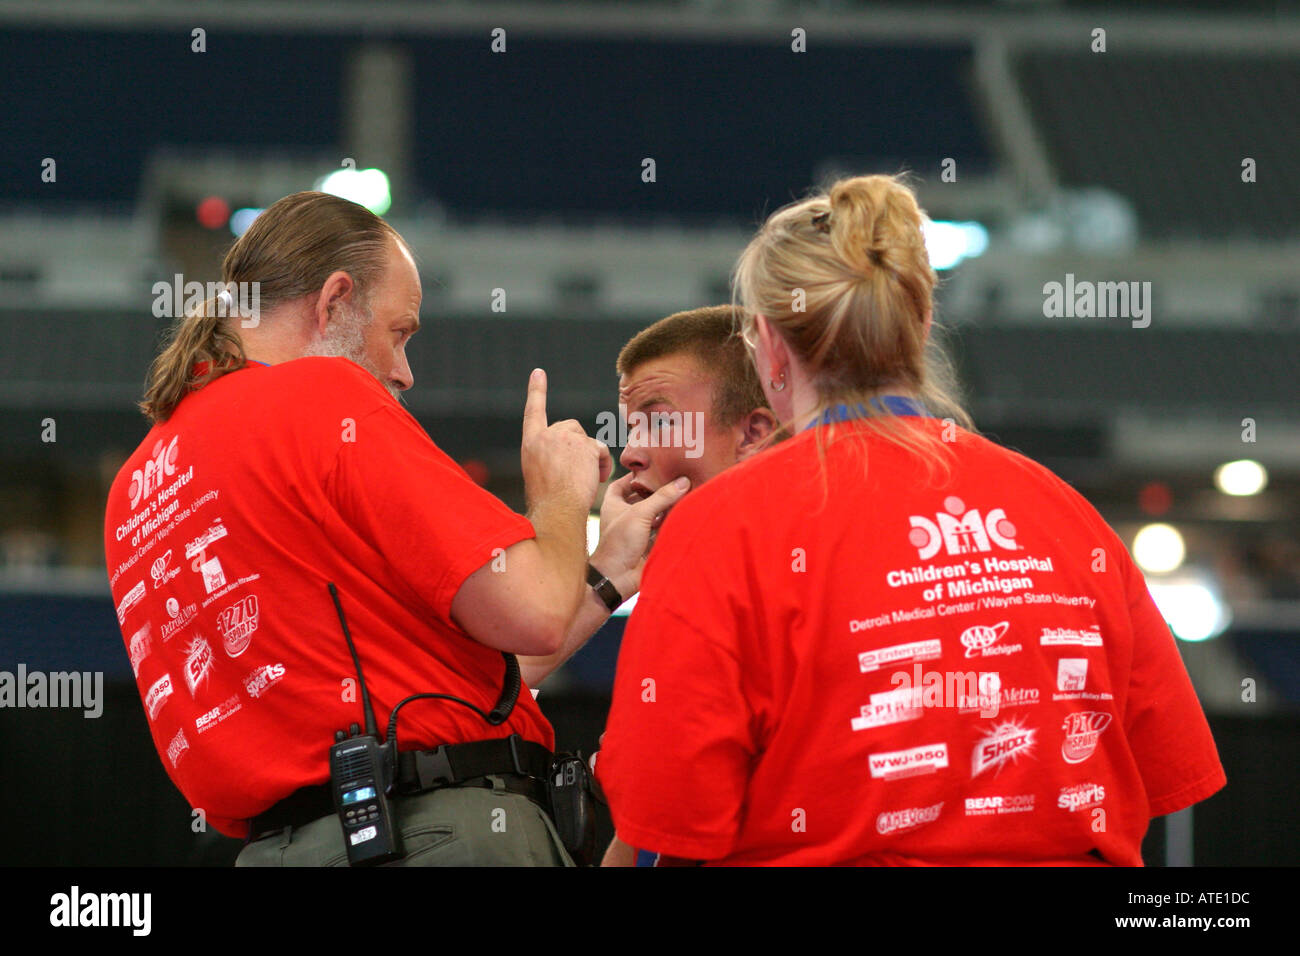 A trainer checks an injury during the wrestling competition in the AAU Junior Olympics in Detroit - Stock Image